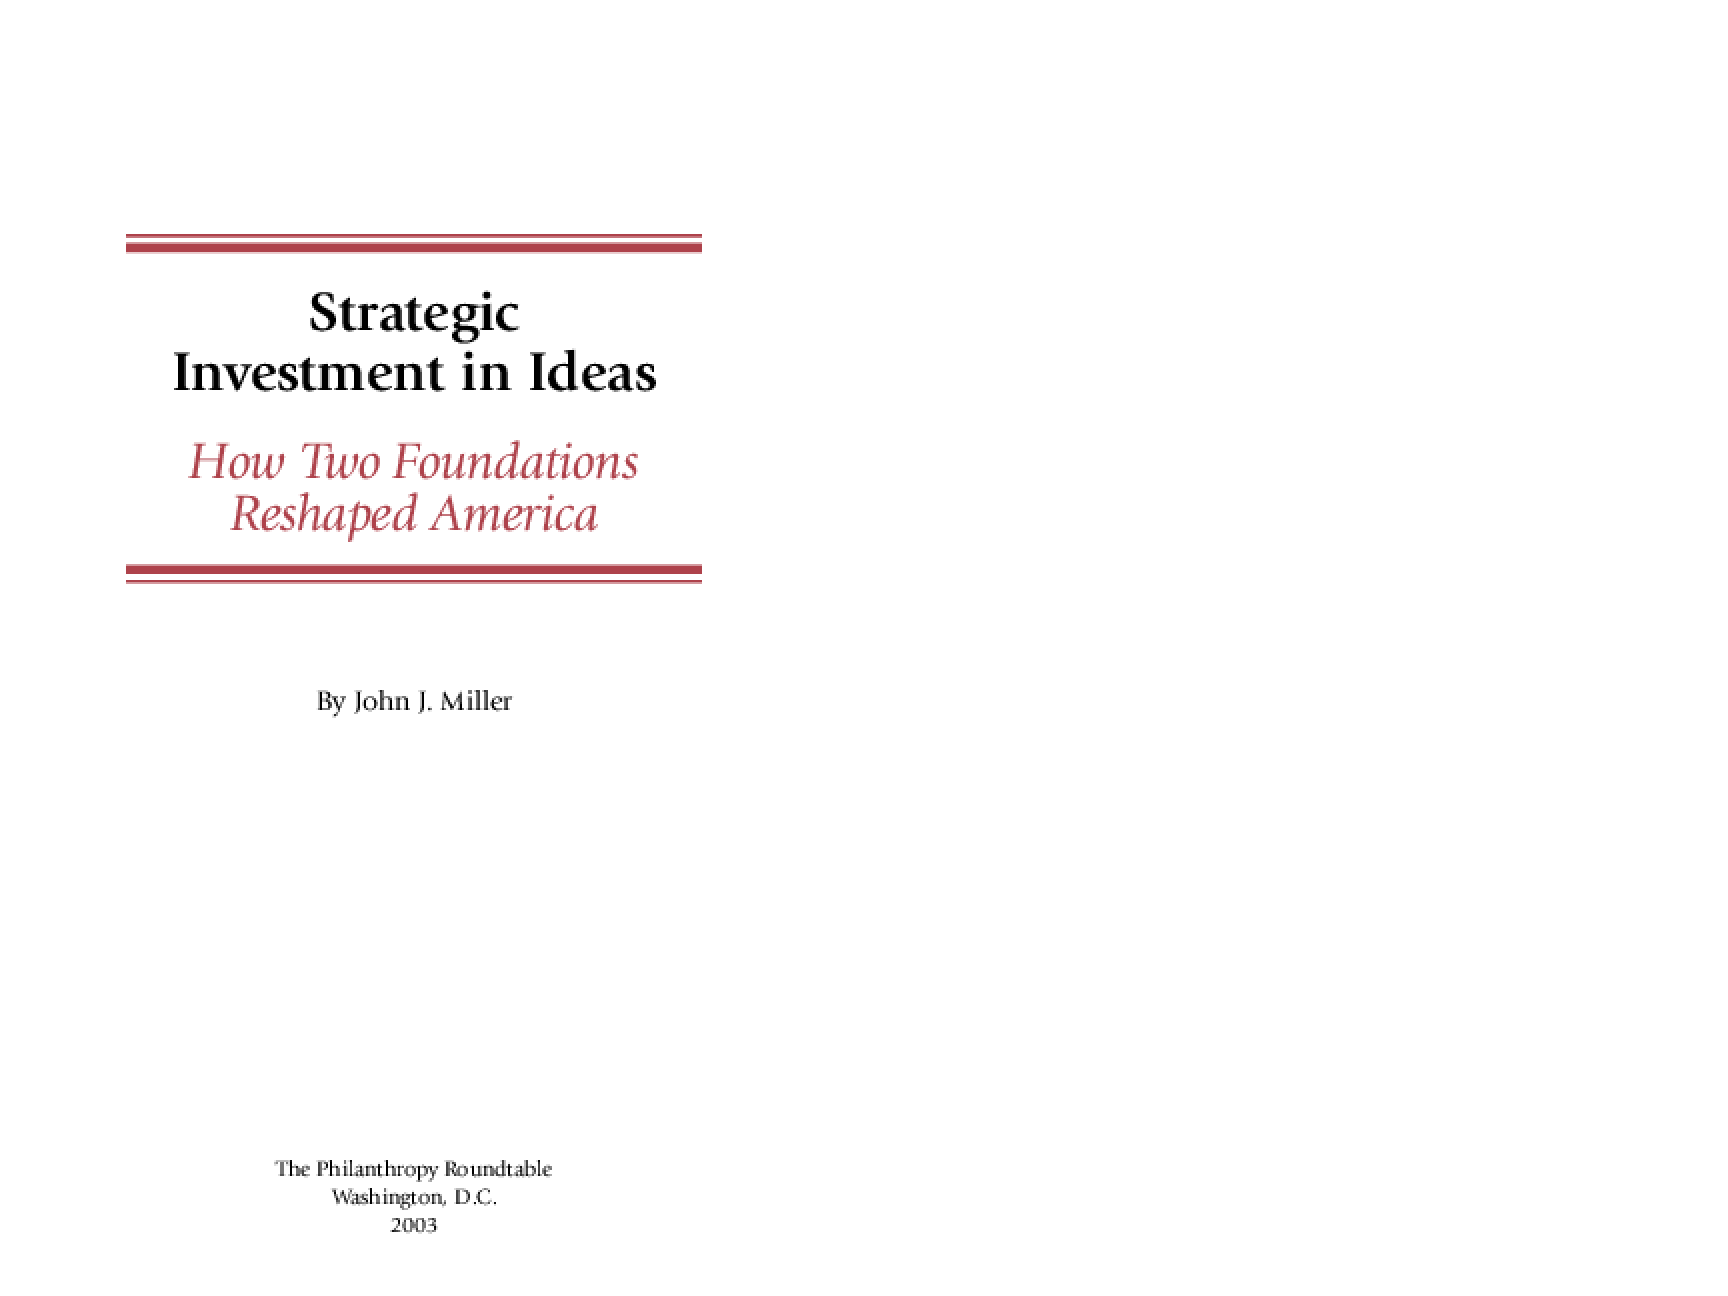 Strategic Investment in Ideas: How Two Foundations Reshaped America